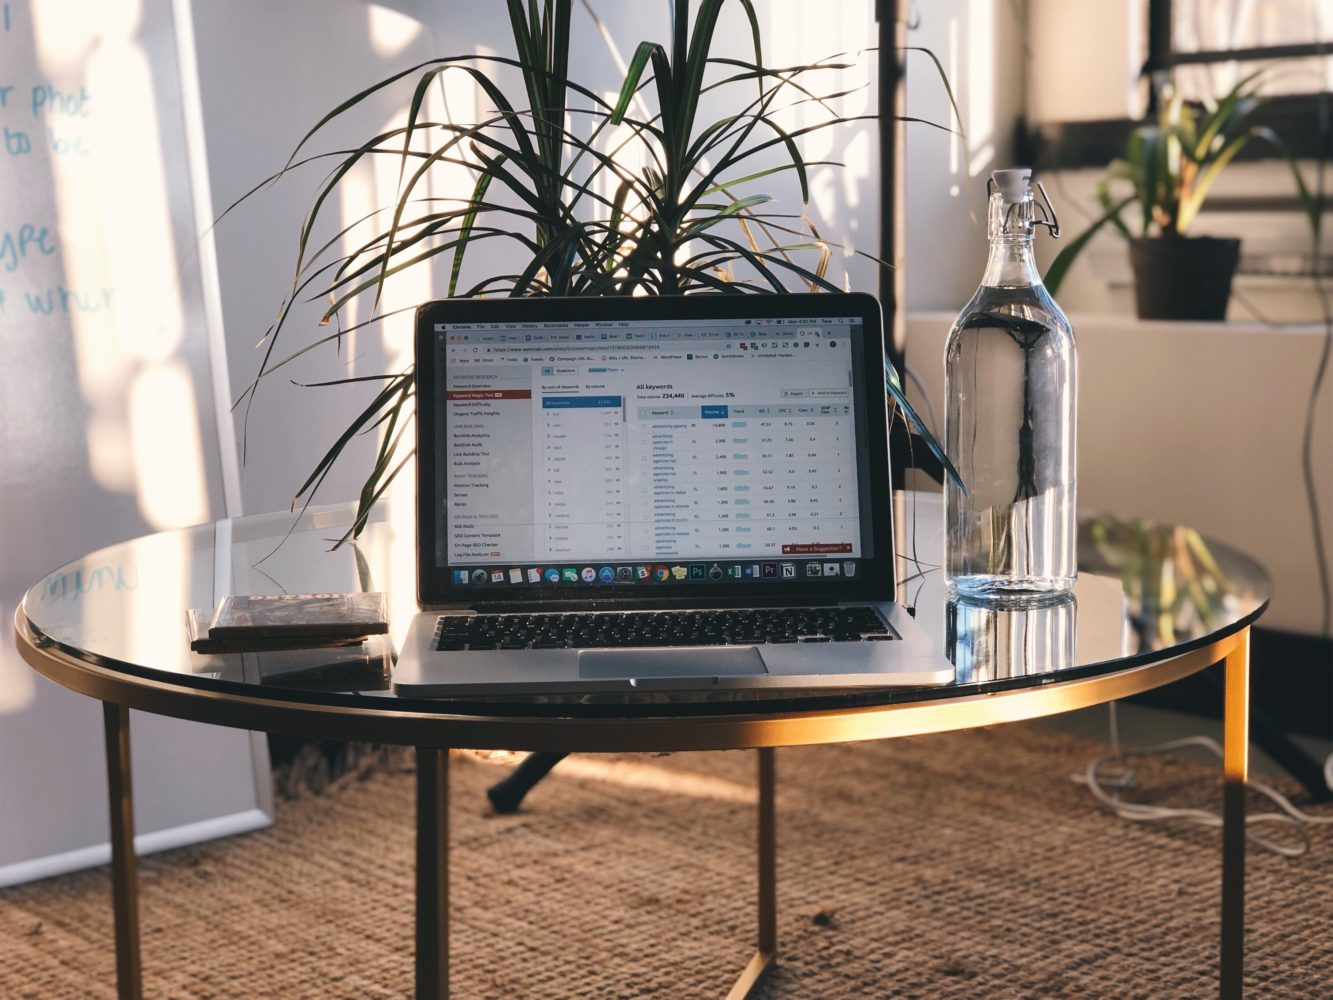 SEO Keyword Research Best Practices, Computer on coffee table in office with spreadsheet